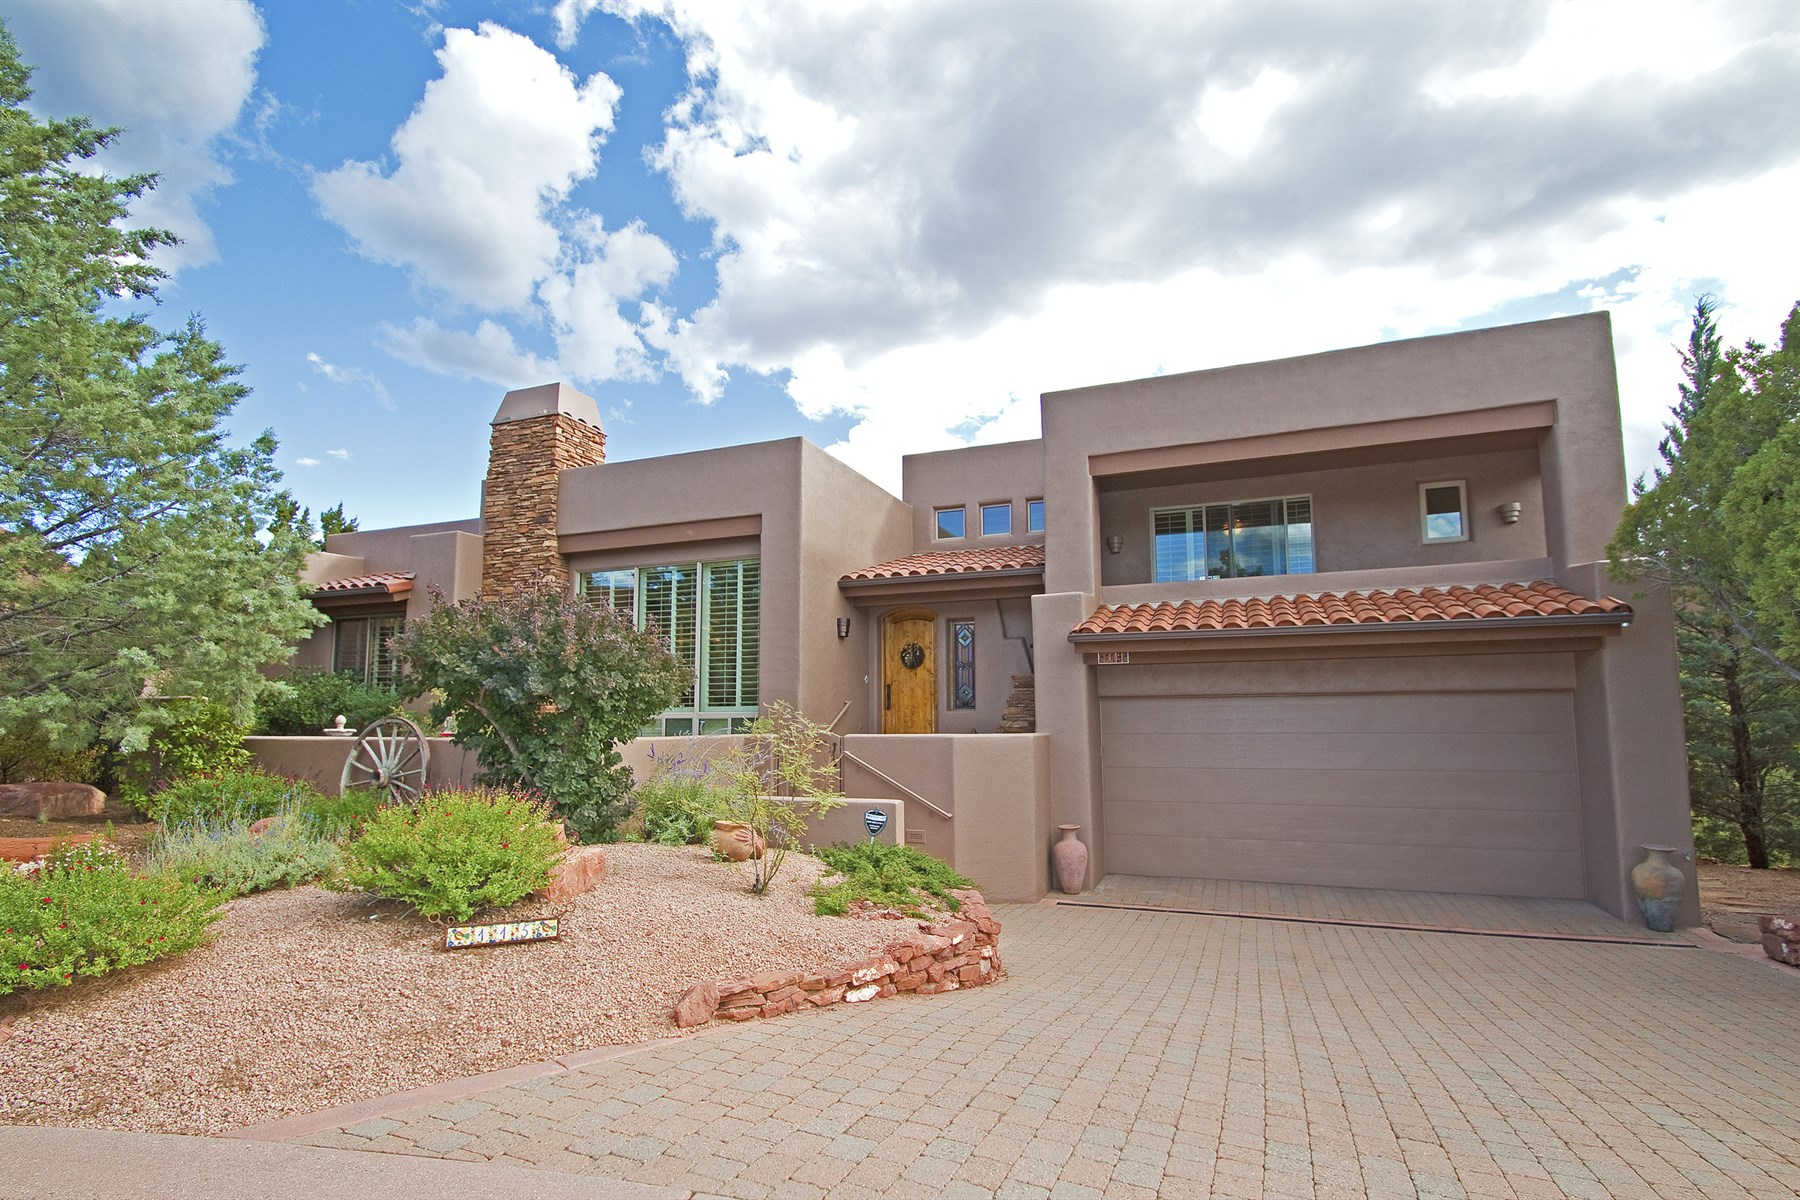 Casa para uma família para Venda às Beautiful home in one of West Sedona's most desirable gated communities 115 Calle Marguerite Sedona, Arizona, 86336 Estados Unidos